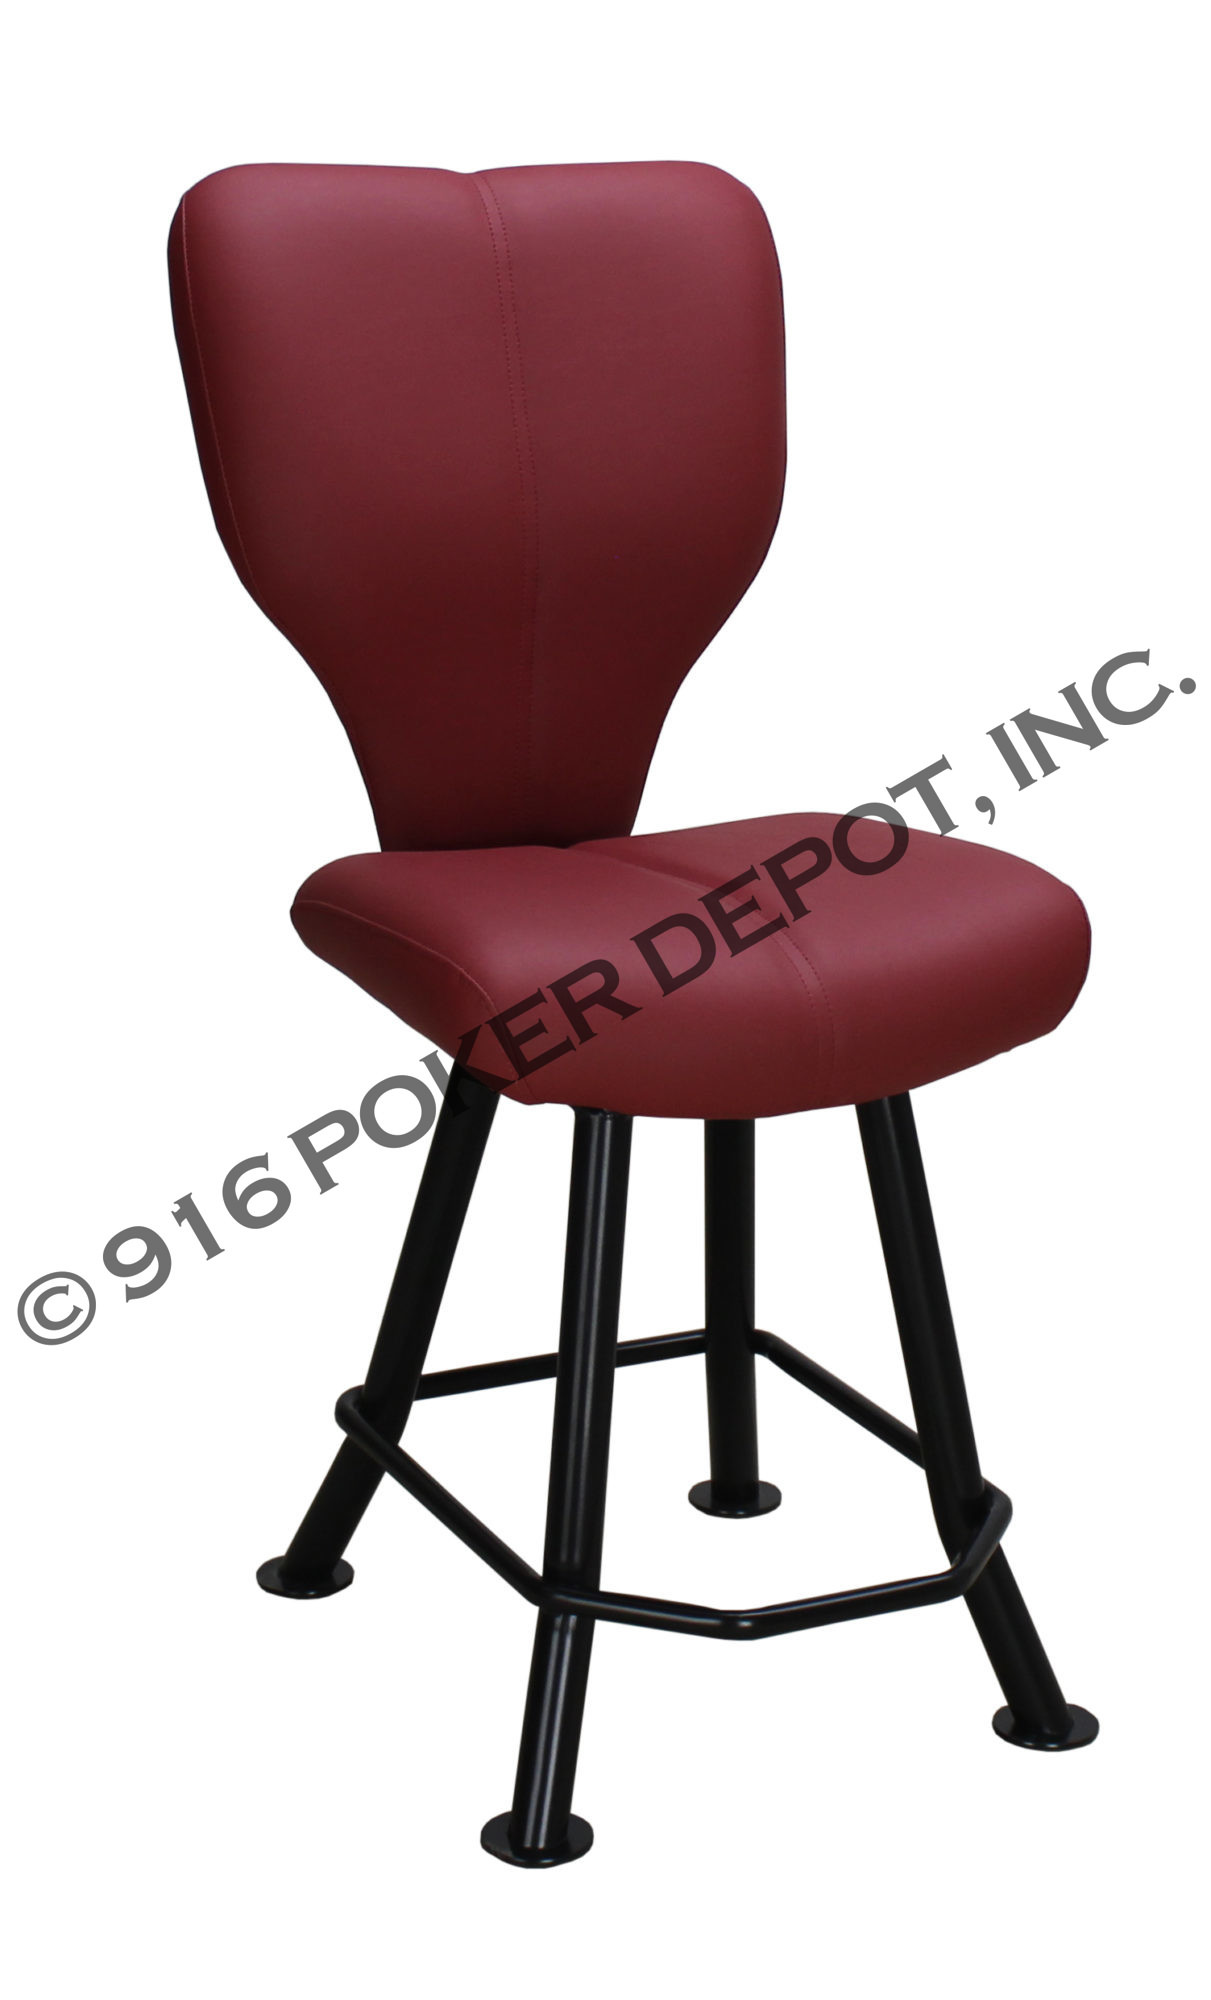 The Cosmo Blackjack & Slot Stool